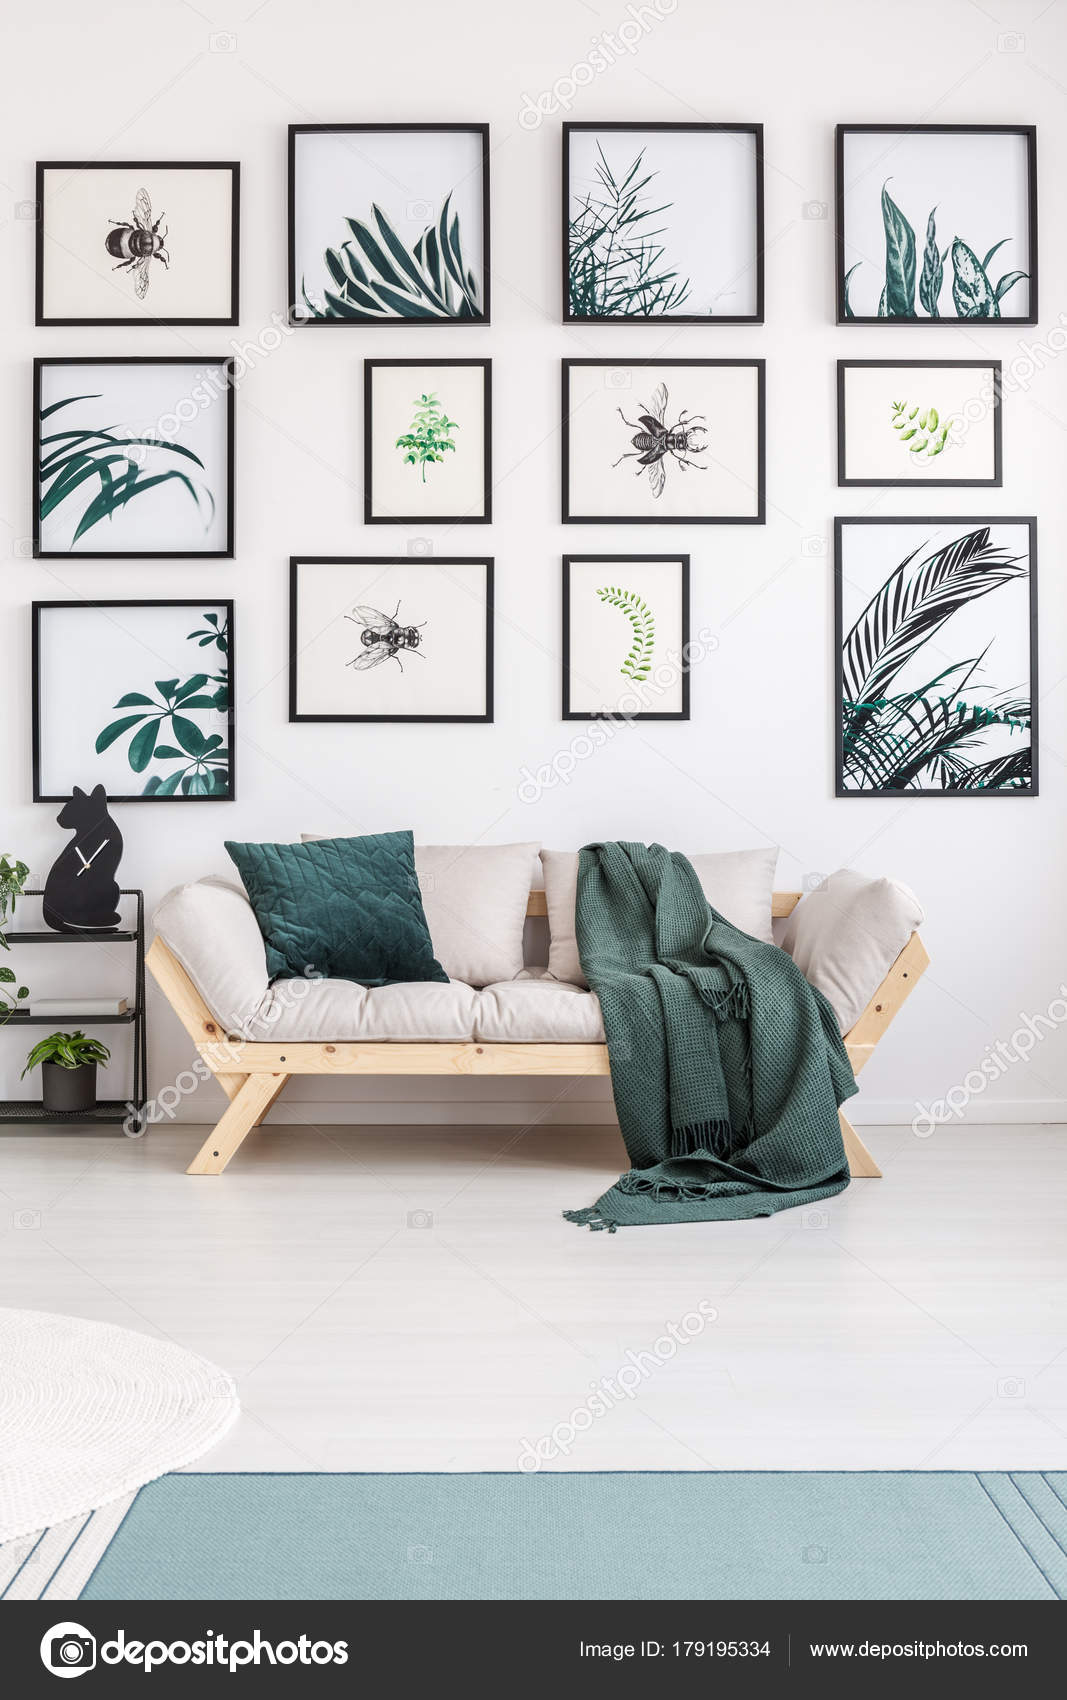 Posters For Living Room - Living Room Ideas